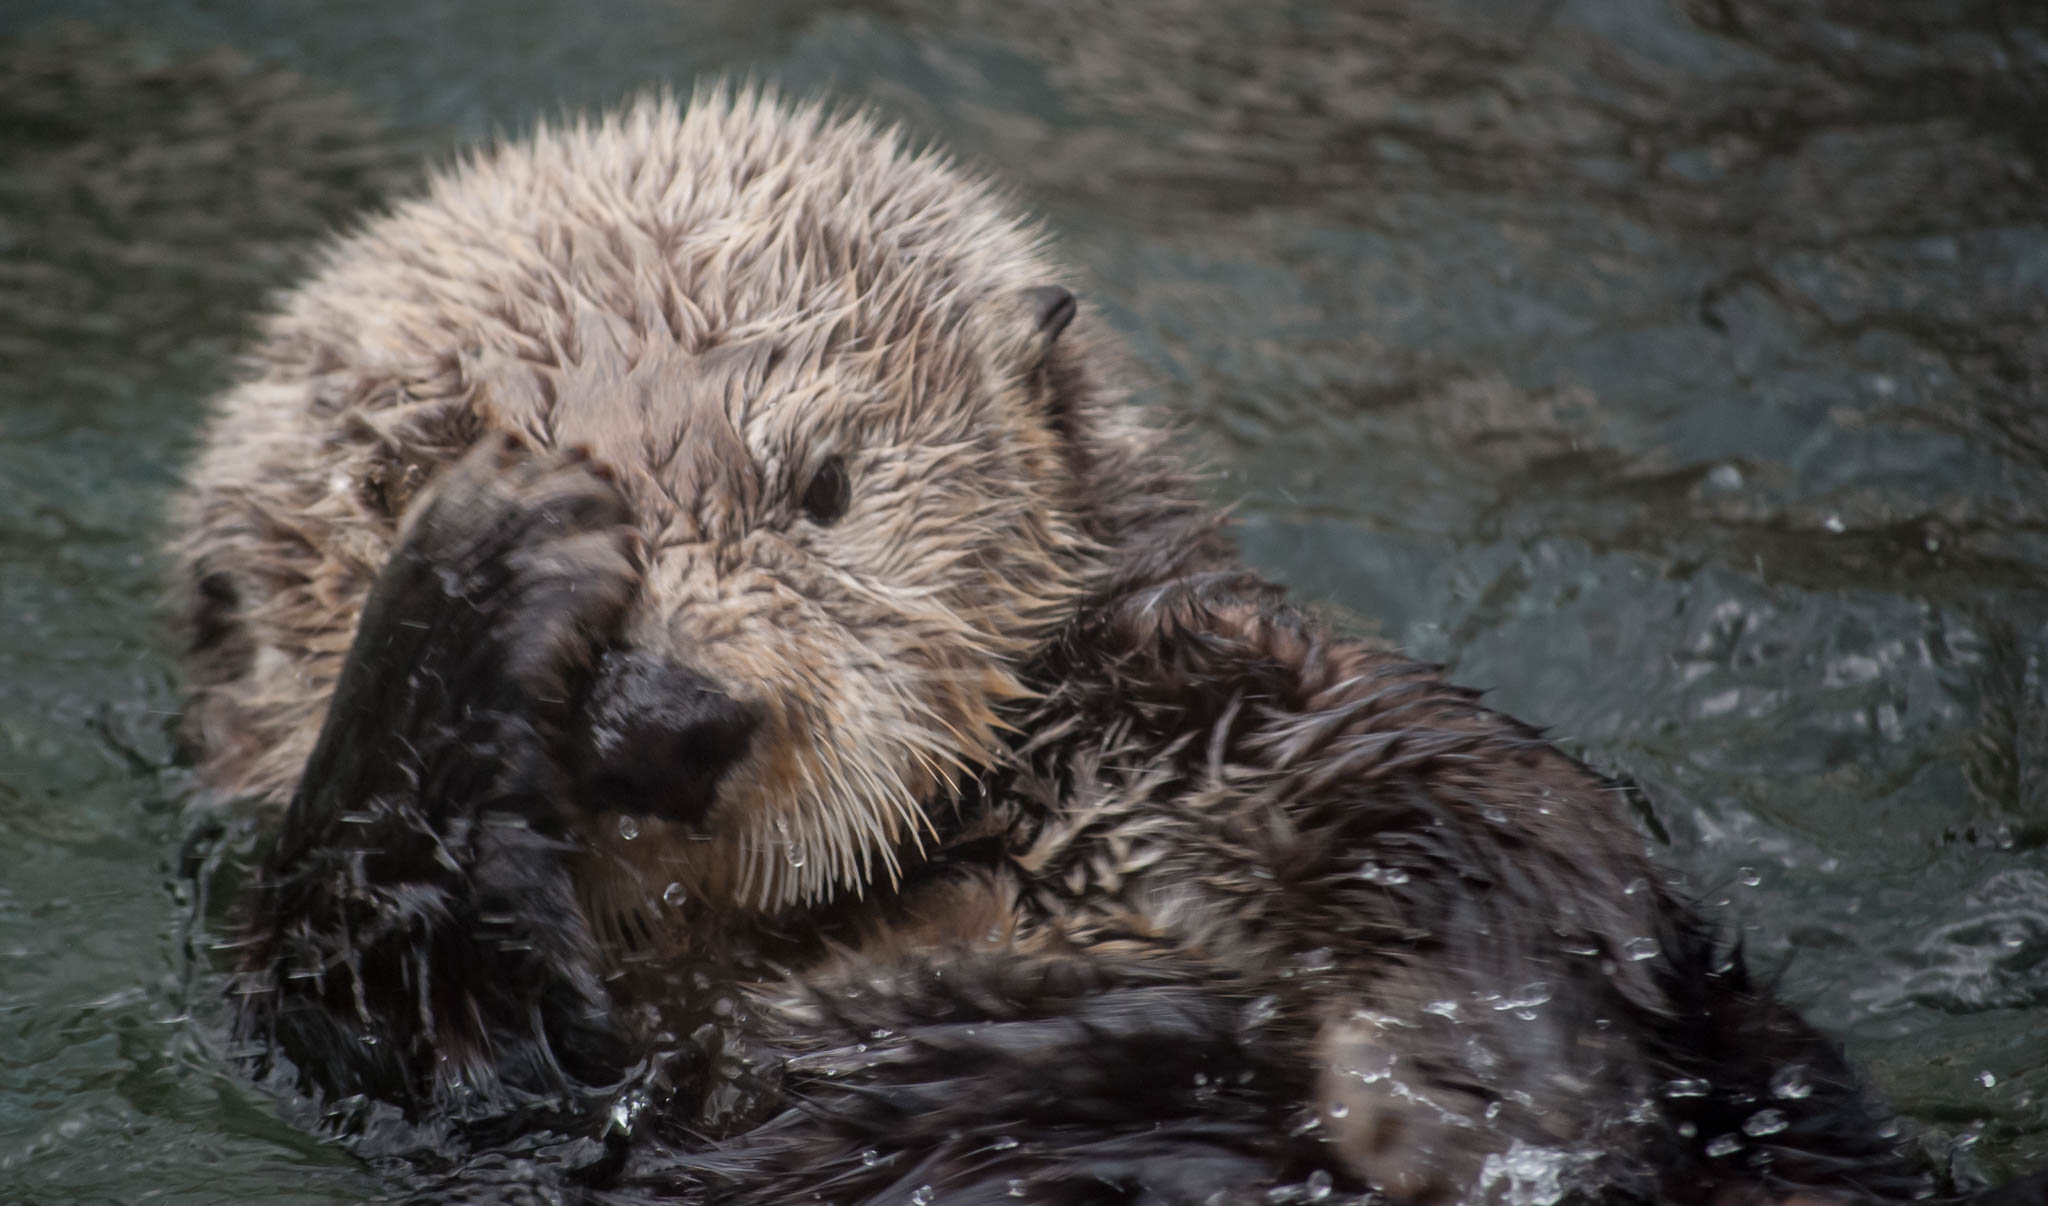 Sea Otter Can't Right Now, He Just Can't